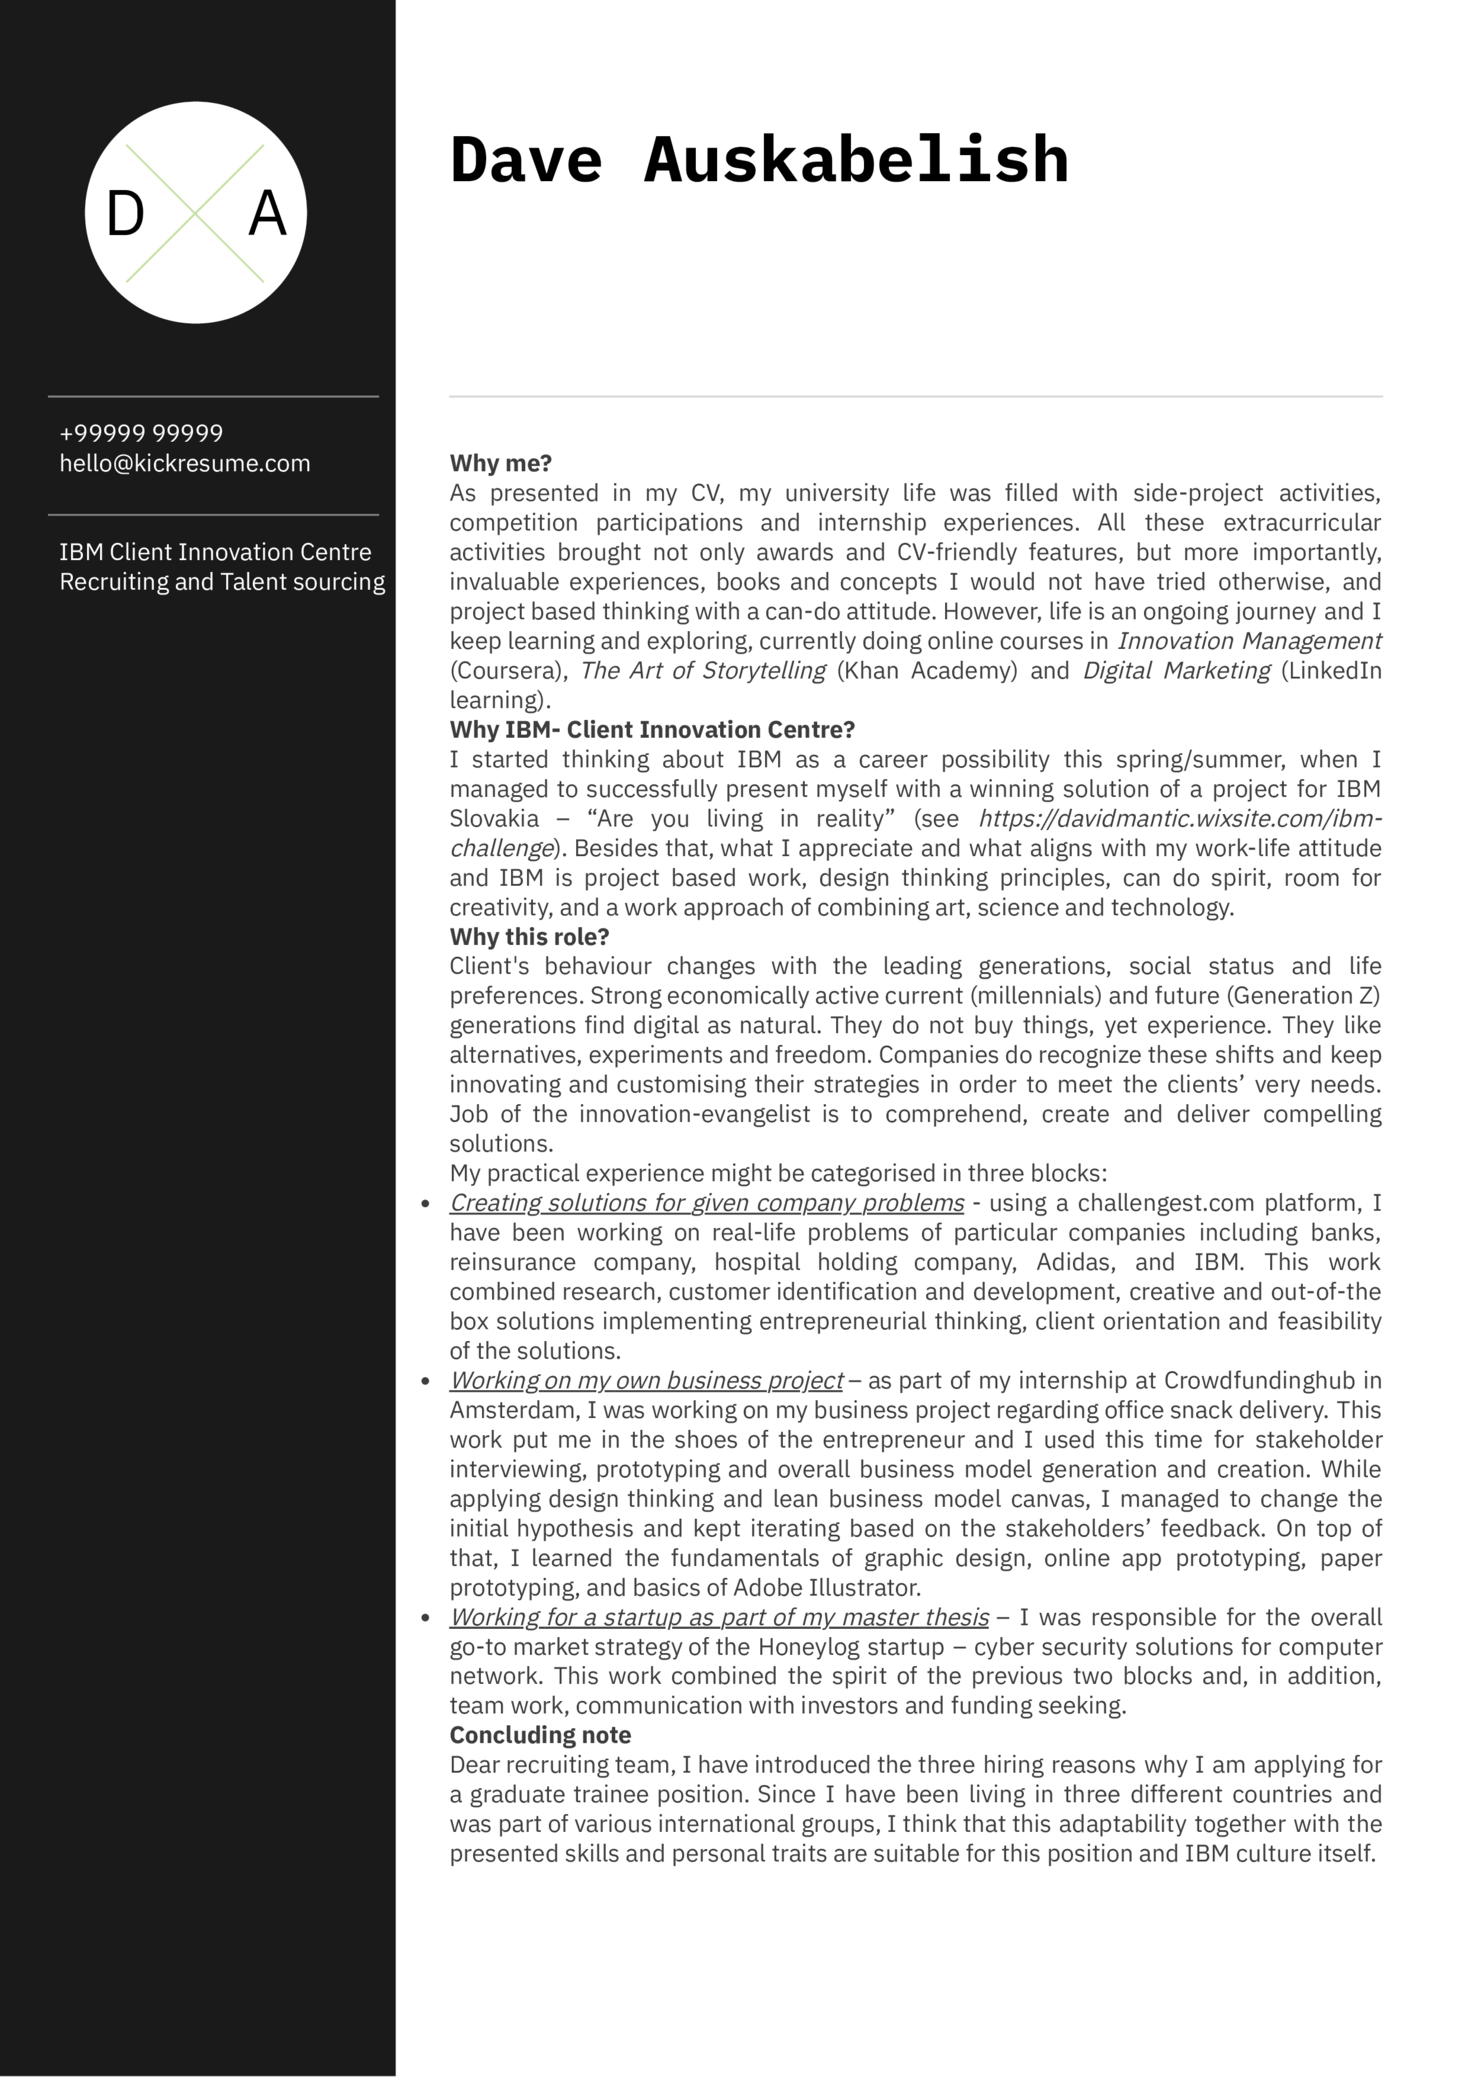 IBM Junior Product Manager Cover Letter Sample (Part 1)